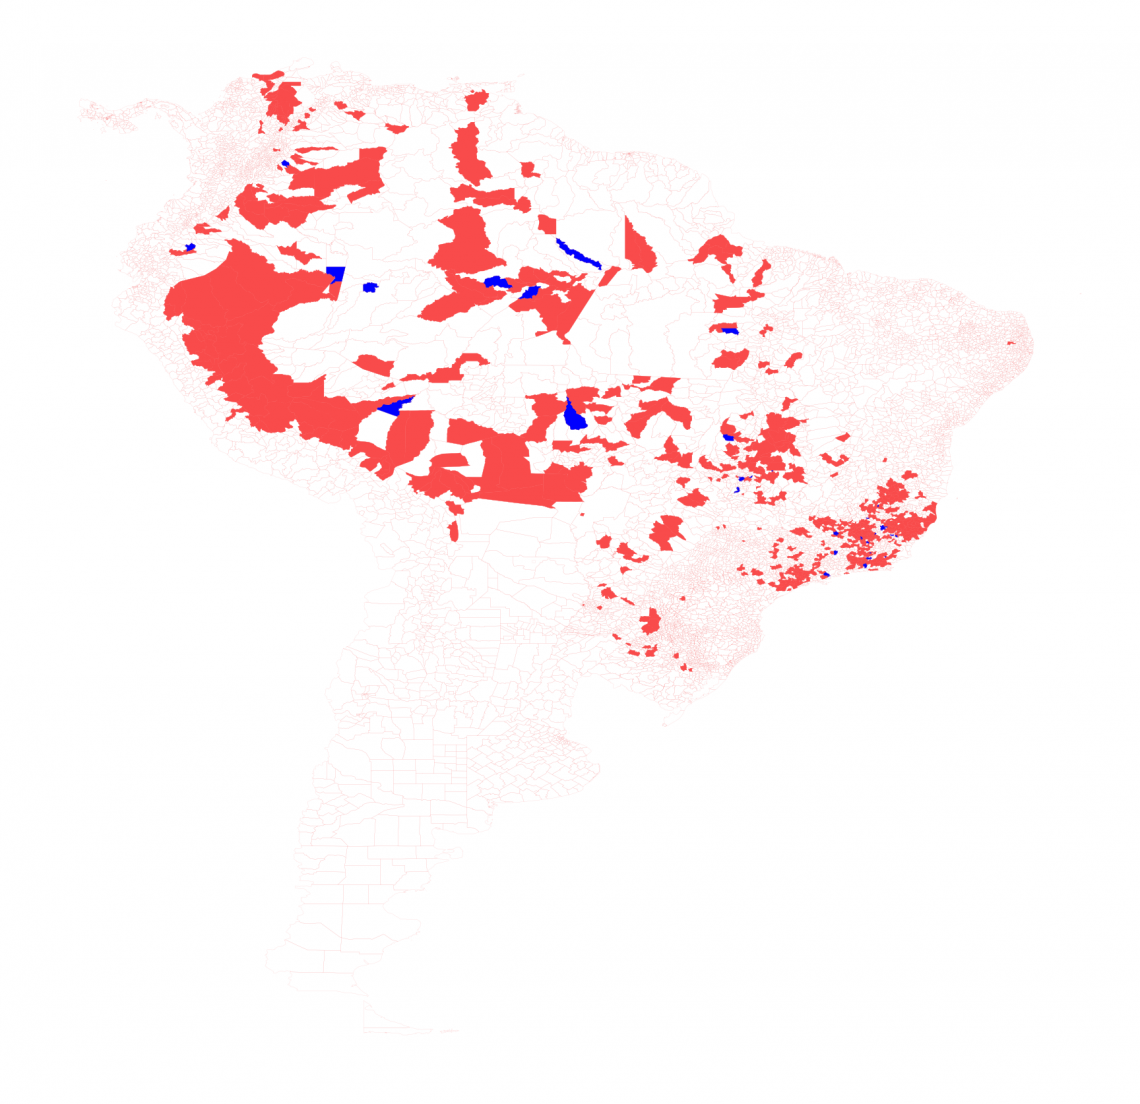 Predicted cases: counties where the algorithm correctly predicted yellow fever cases are colored in red, and counties where the algorithm incorrectly predicted cases are shown in blue.